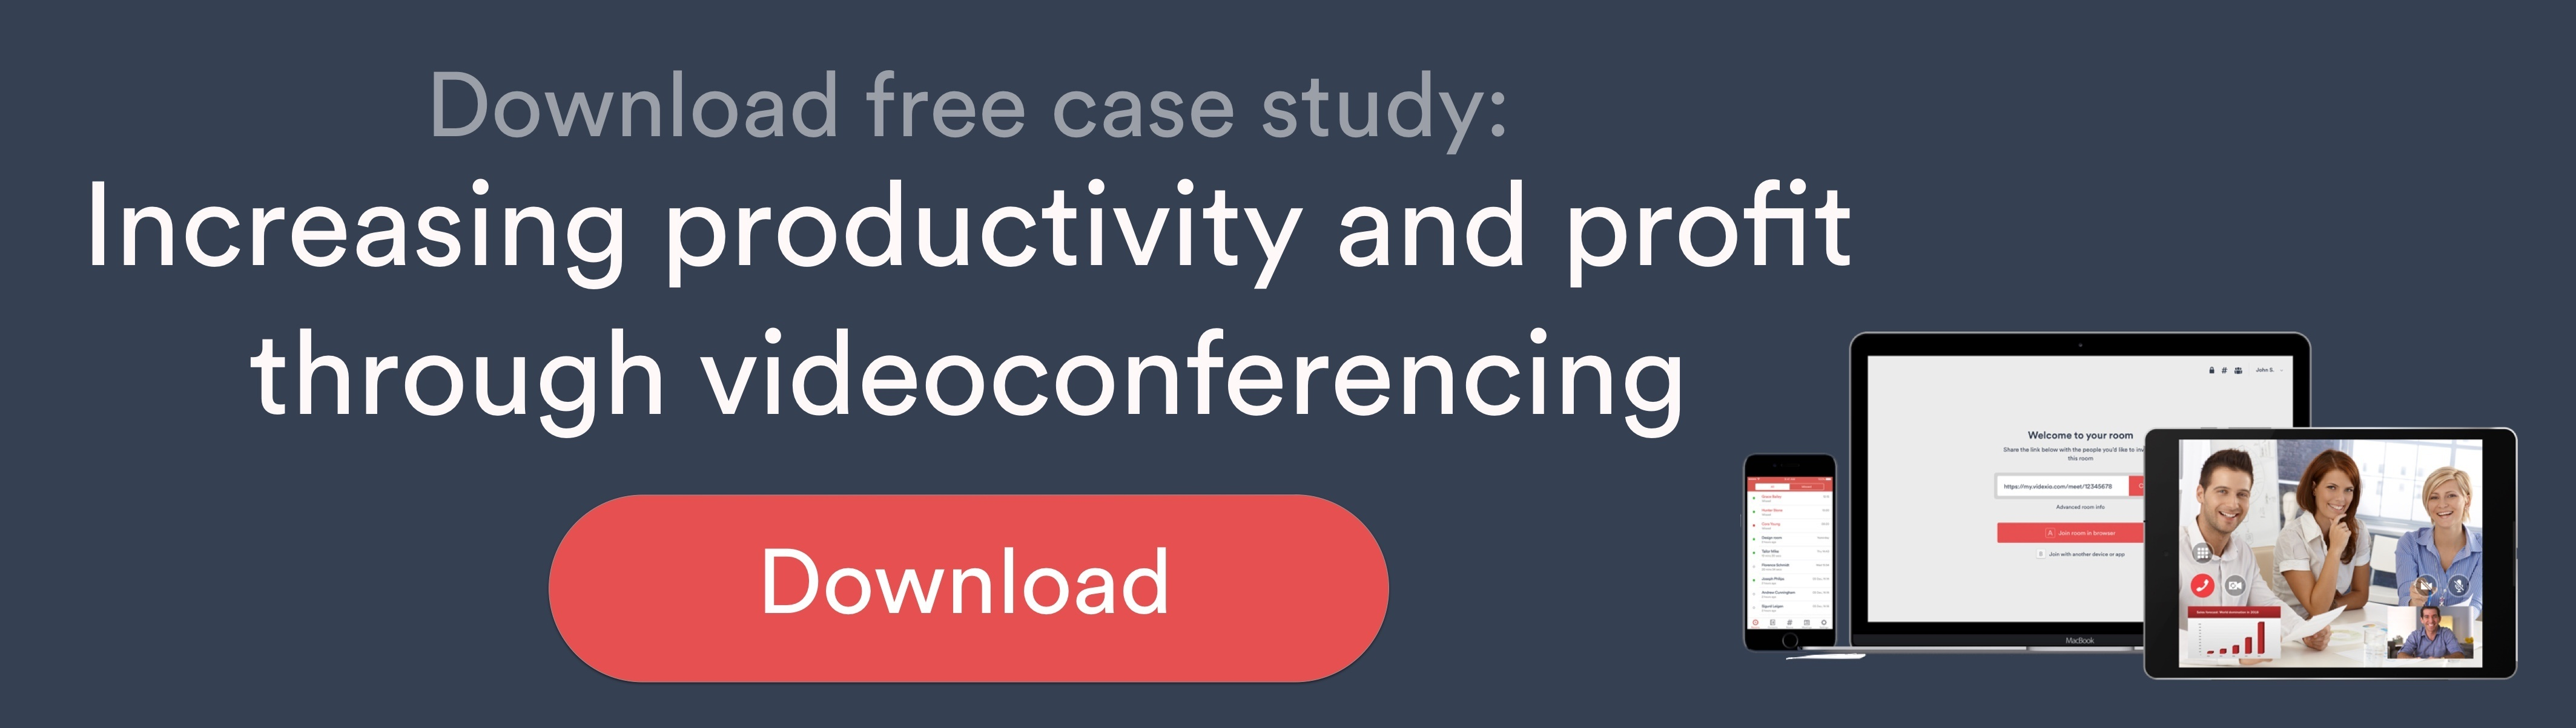 Increasing productivity and profit through videoconferencing